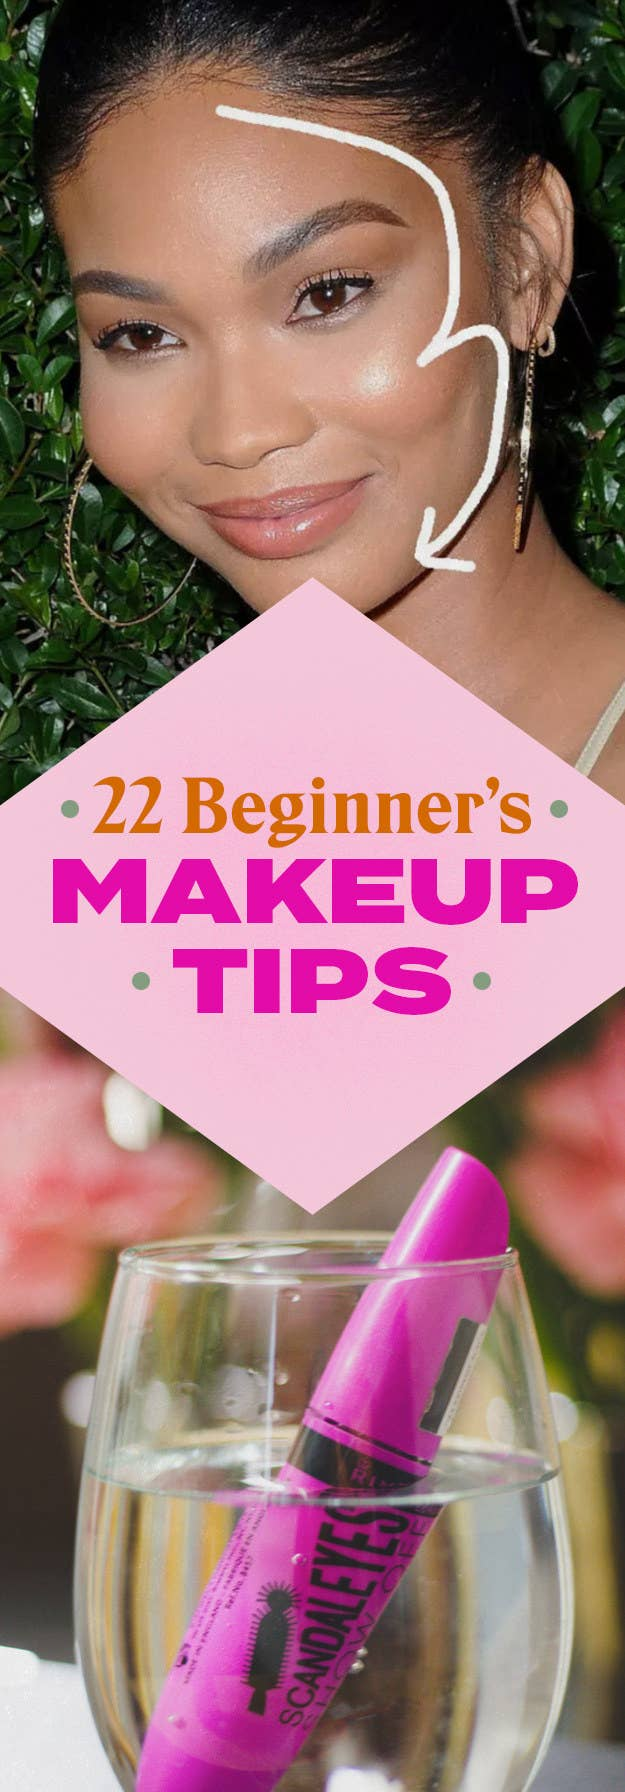 22 Makeup Tricks Every Beginner Should Know 3 Way Switch Make Up Share On Facebook